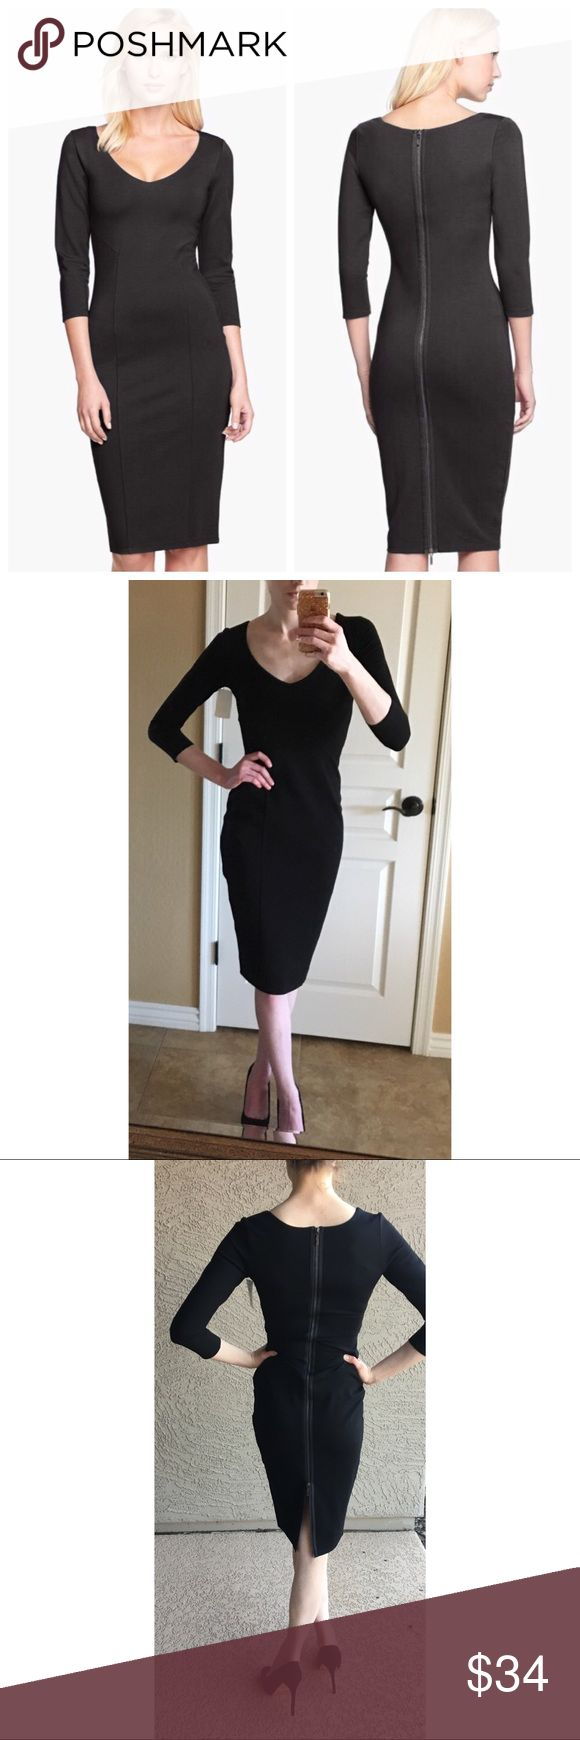 """✨NWOT✨ Midi Zip-back Dress NWOT 3/4 Sleeve sleek bodycon midi dress by Felicity & Coco (a Nordstrom brand). Full-zipper back, V-neck, Stretch fabric--almost scuba-like material, Fitted silhouette... I just don't have very much in the curves department lol. I'm 5'9, usually an xs/s. 